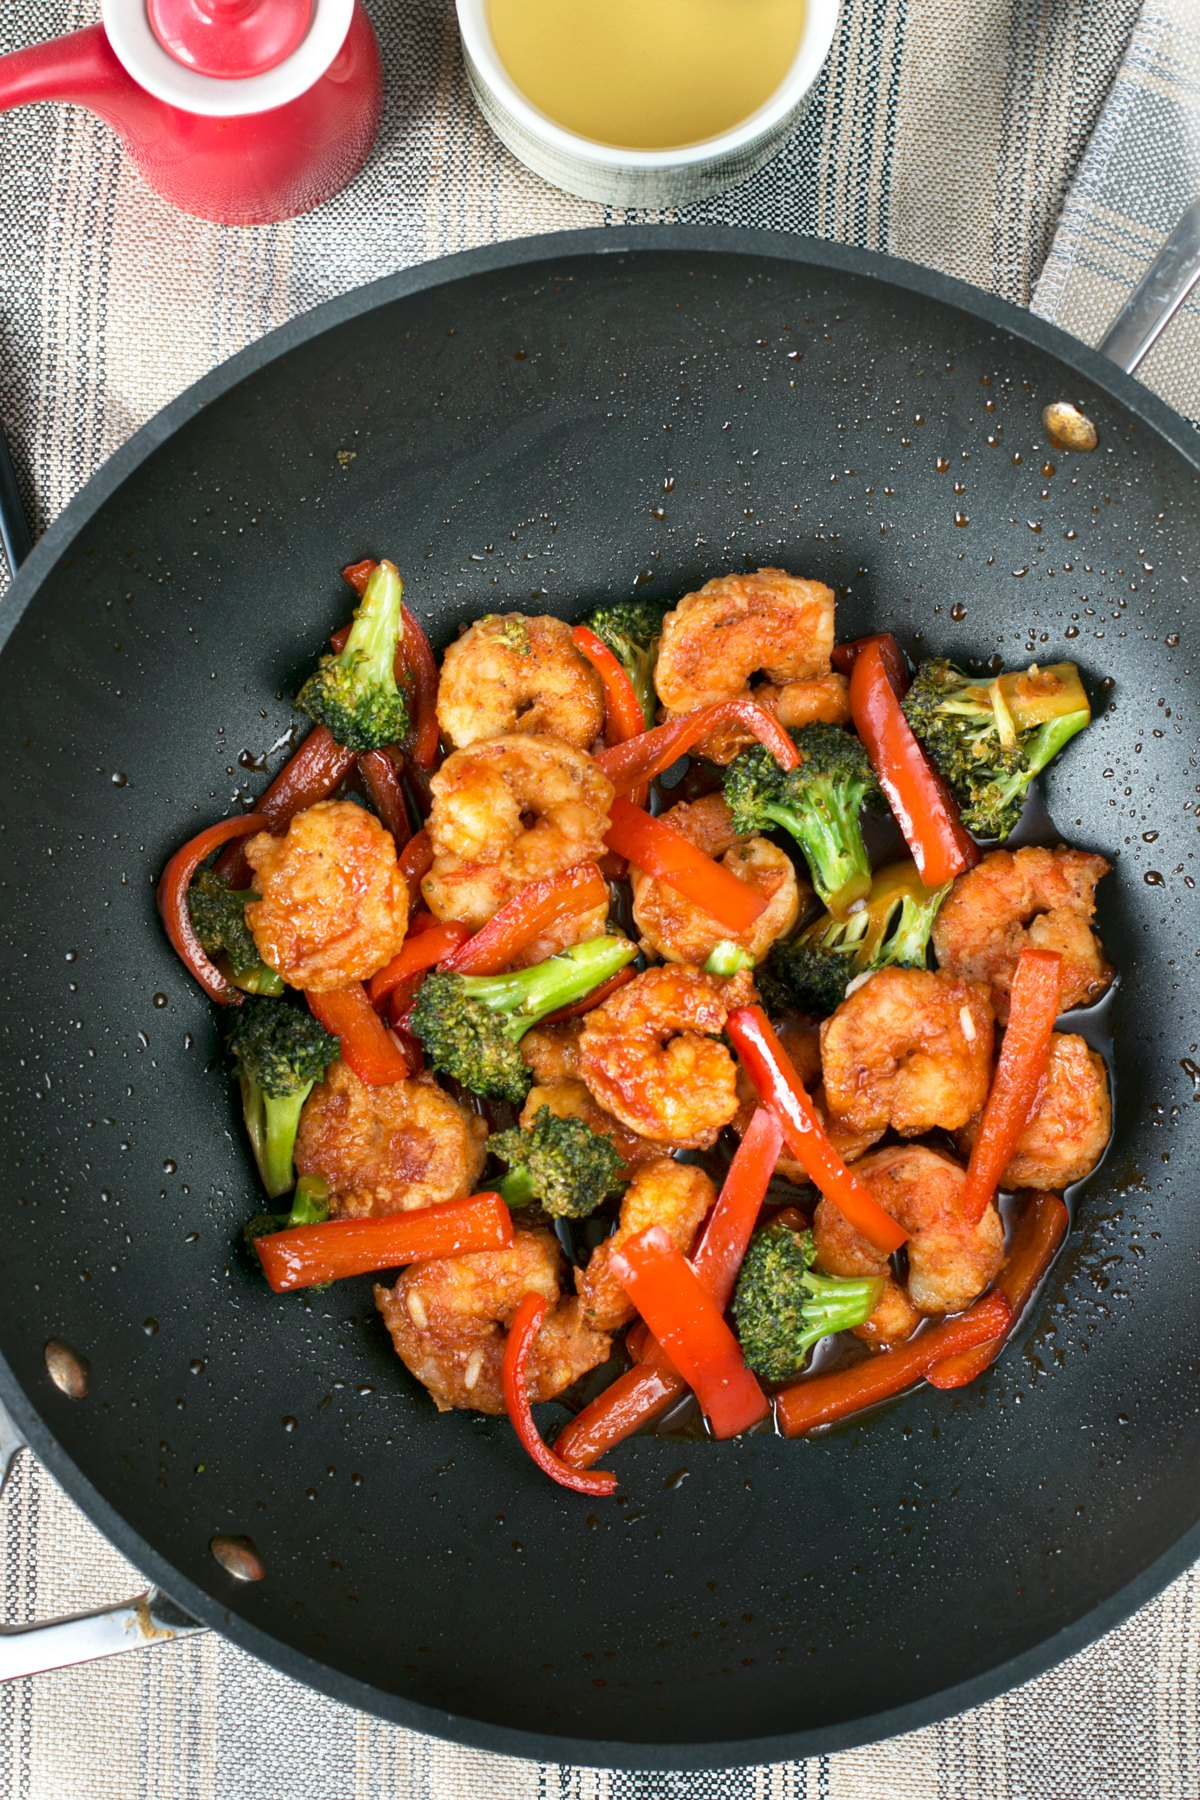 Honey sriracha shrimp peppers and broccoli being sauteed in a wok